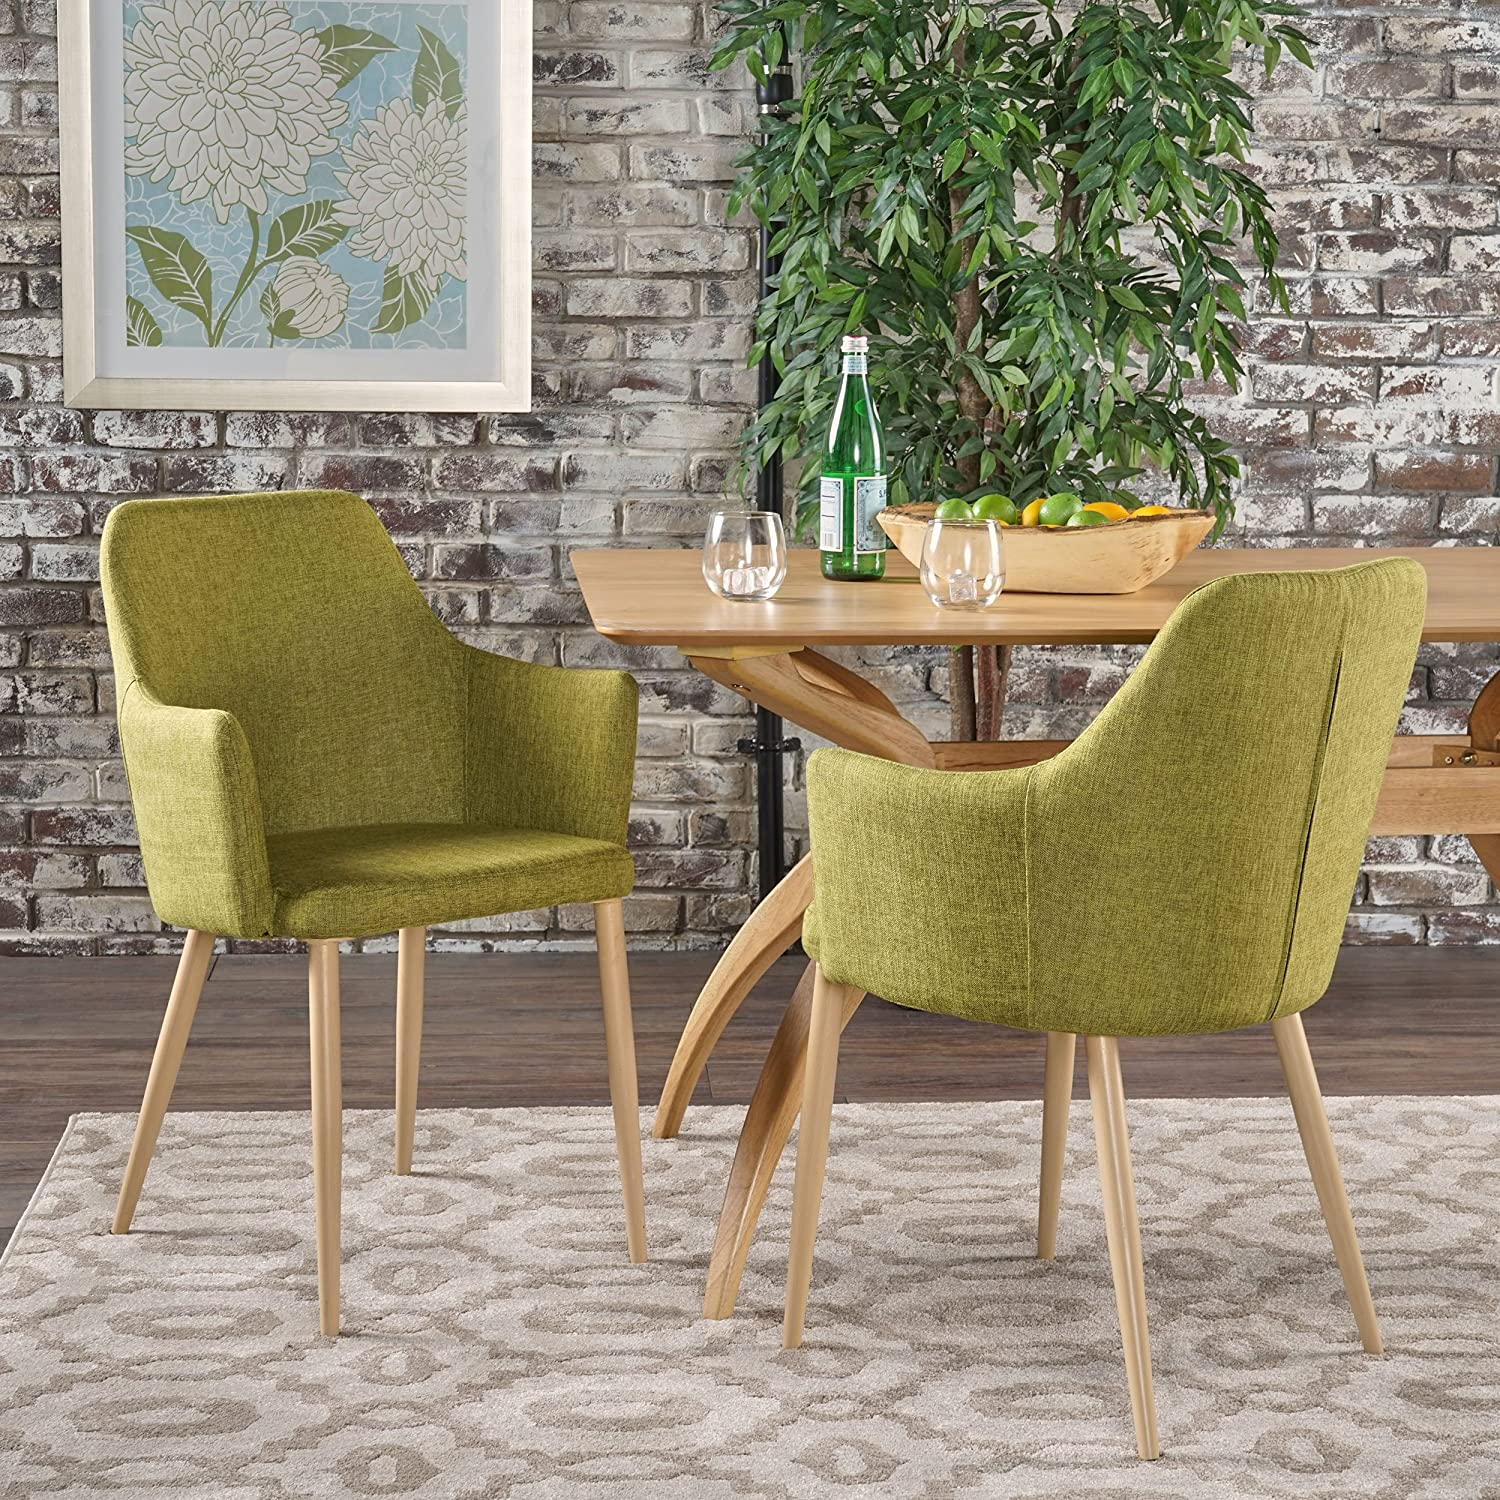 Christopher Knight Home Zeila Mid Century Modern Dining Chair, Green Light Brown